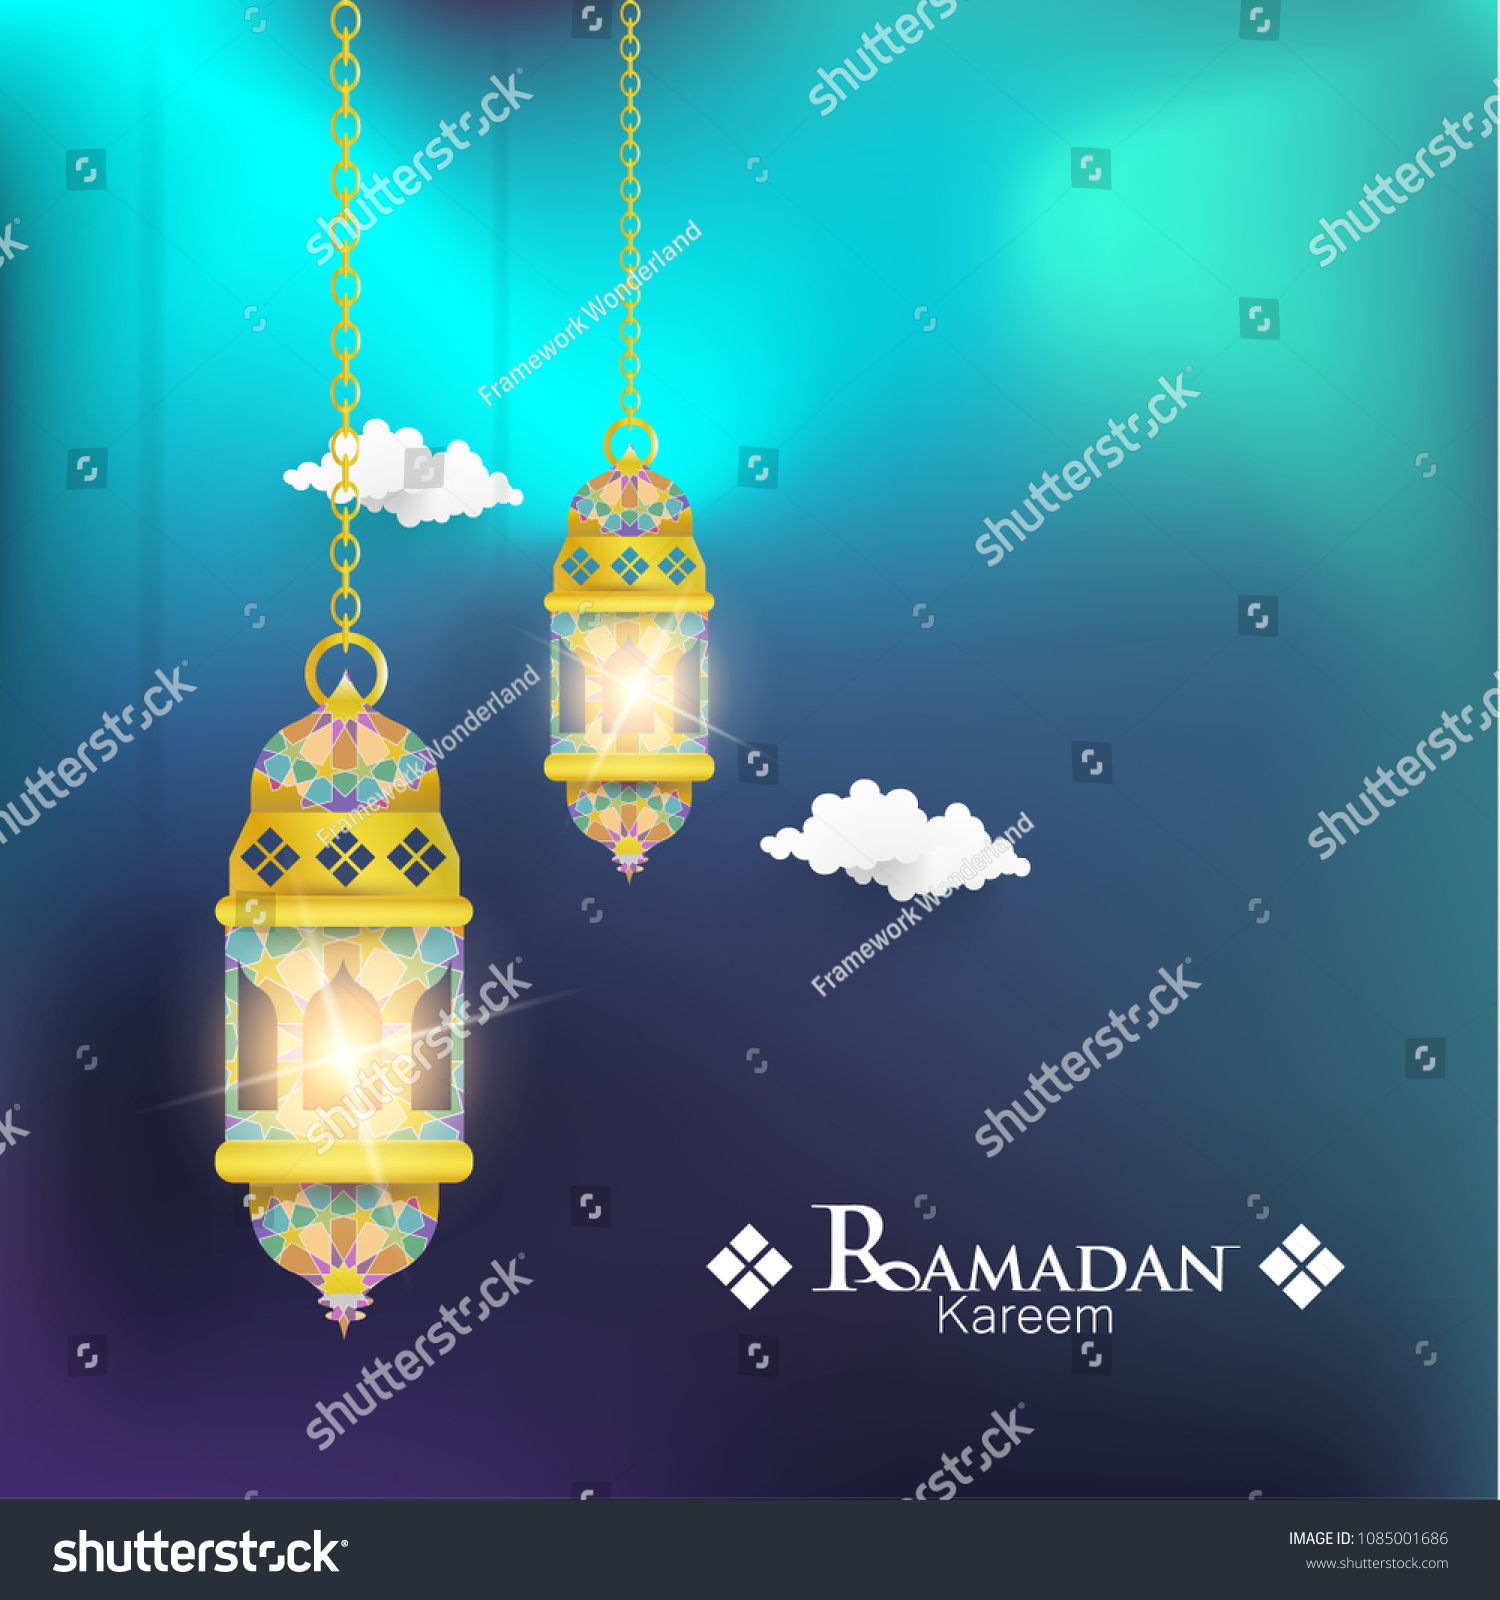 Ramadan Kareem Illustrations Lanterns Greeting Cards Stock Vector